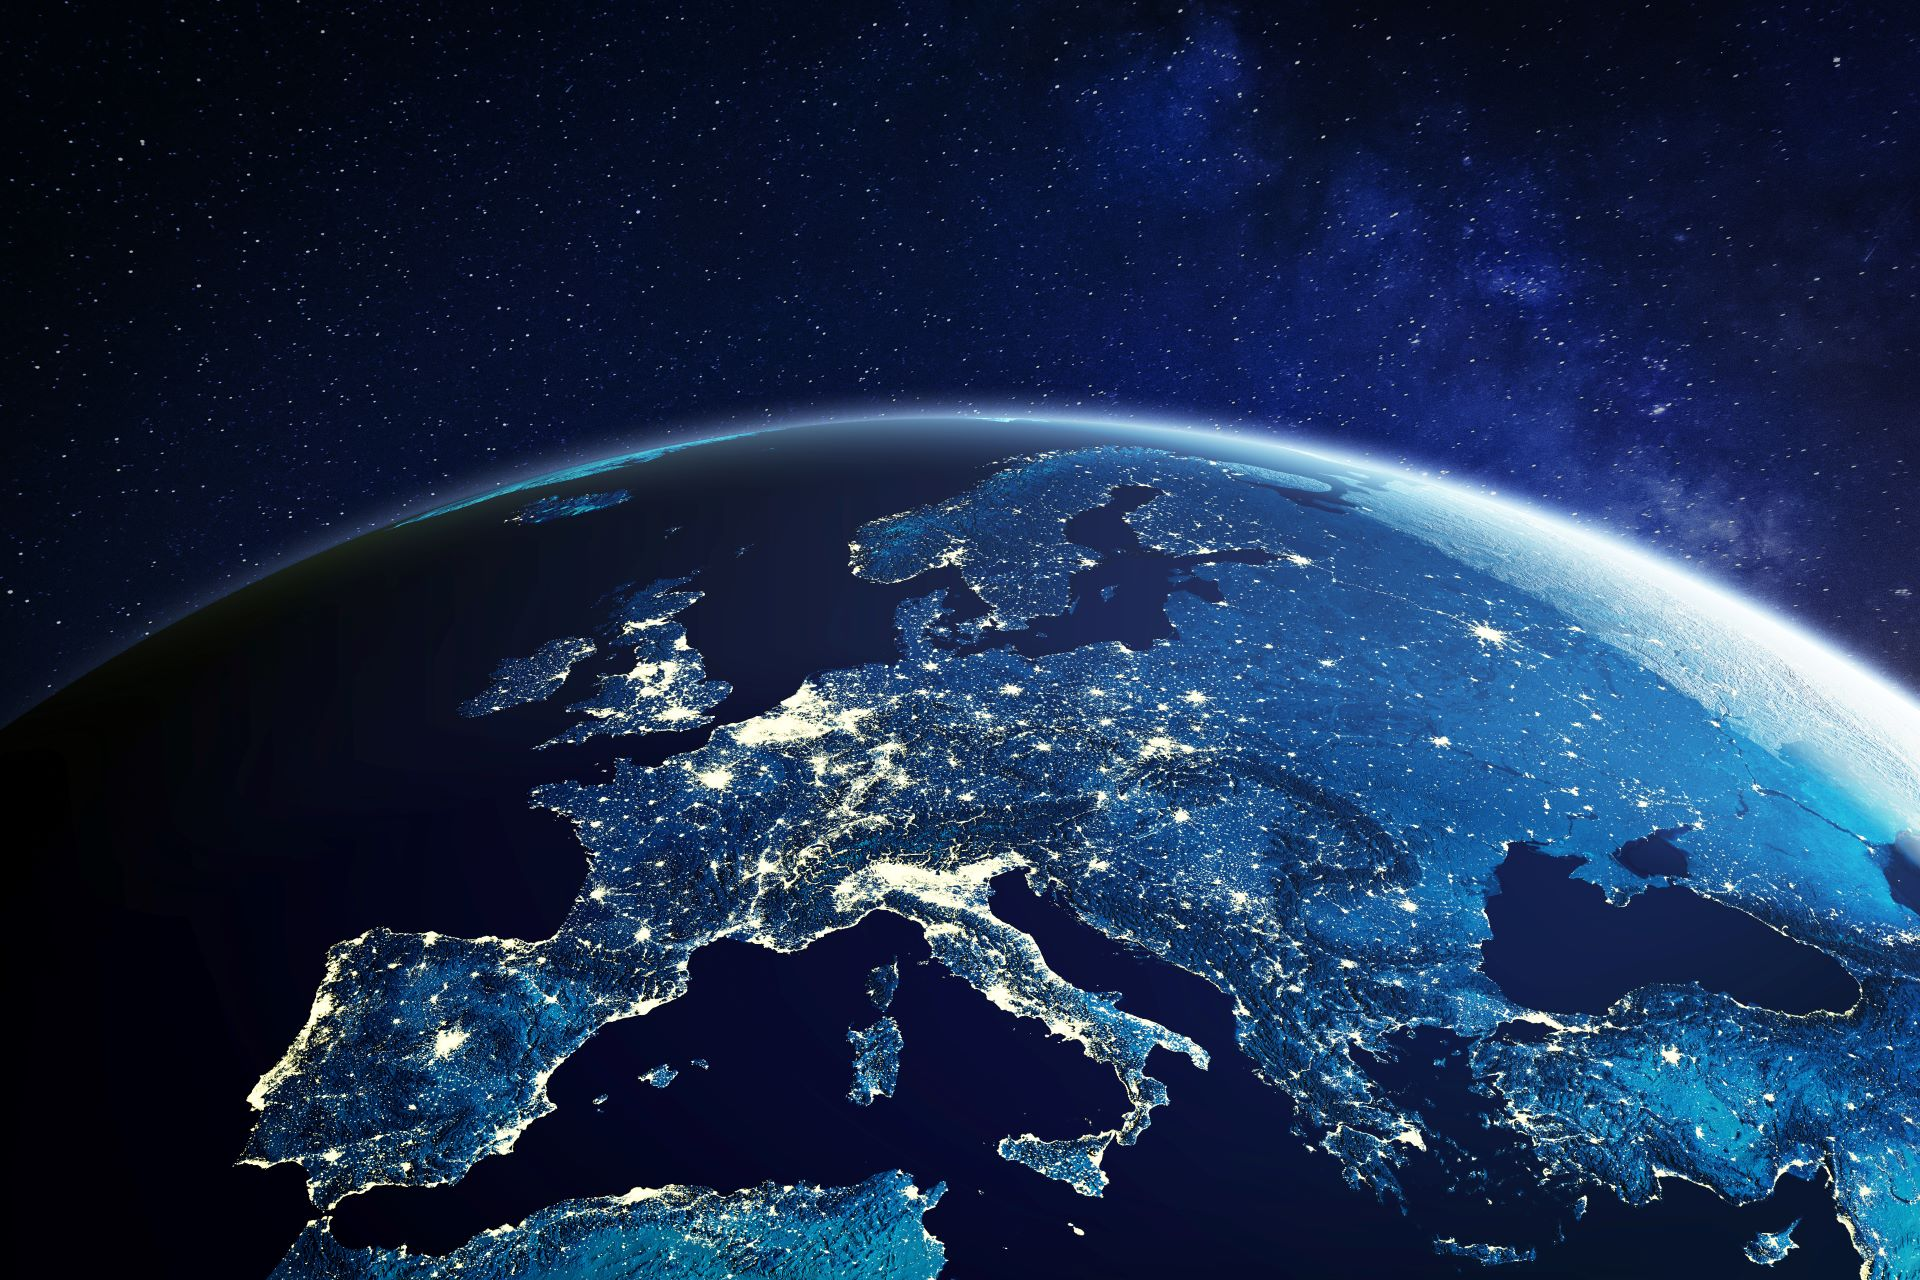 Leasing and automotive rental are supporting Europe